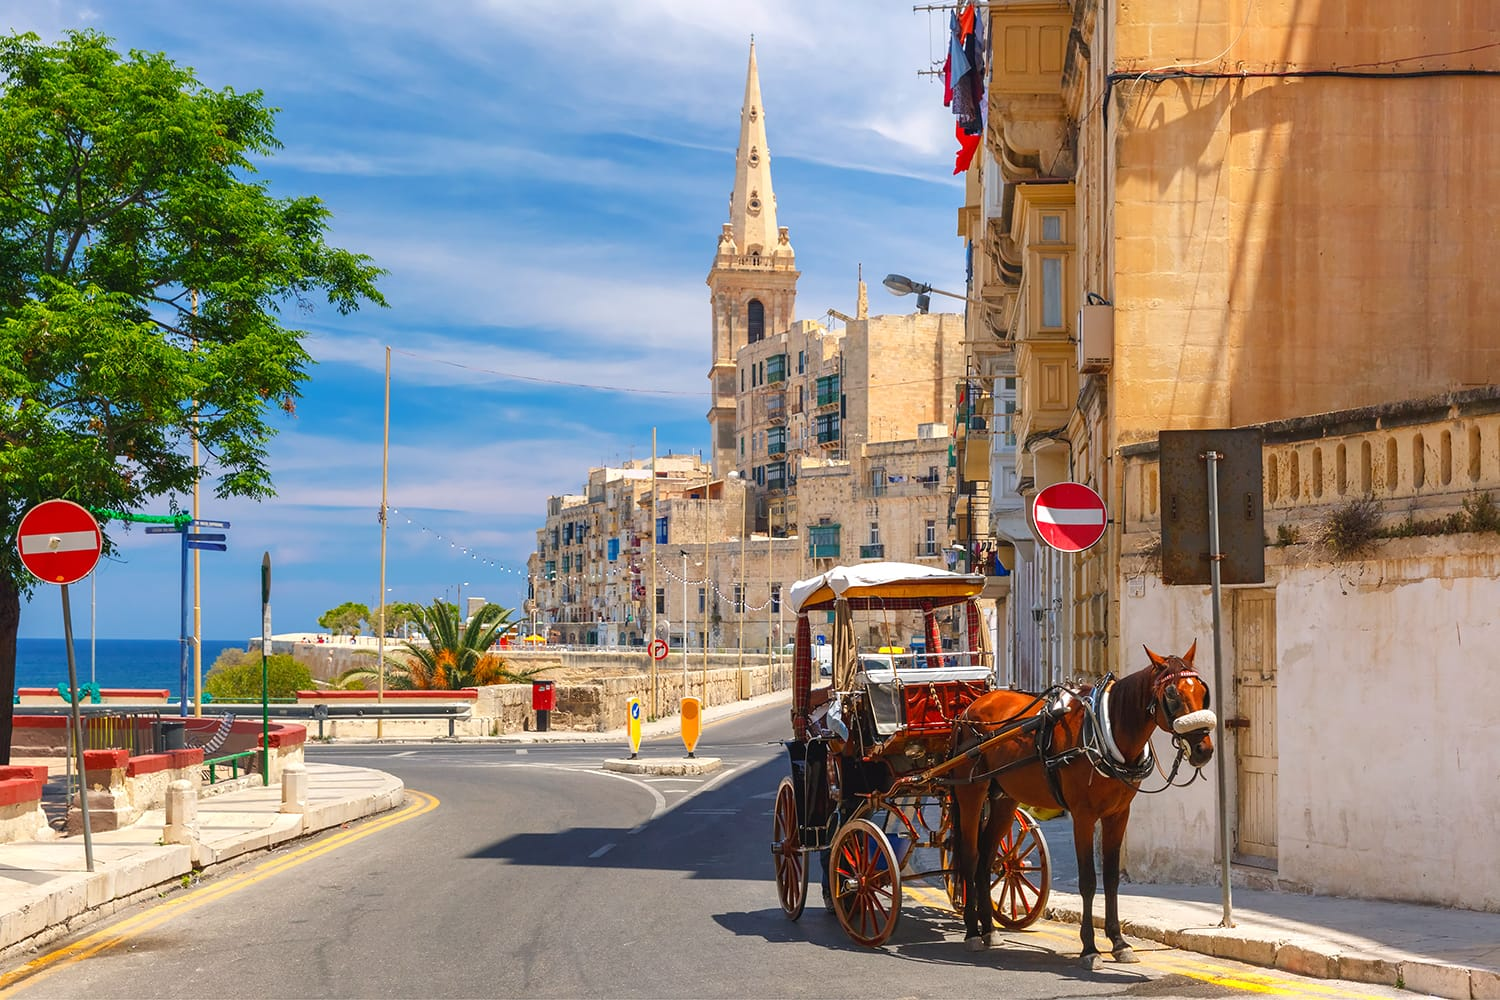 Horse carriage on the street of old town and St. Paul's Anglican Pro-Cathedral in Valletta, Malta